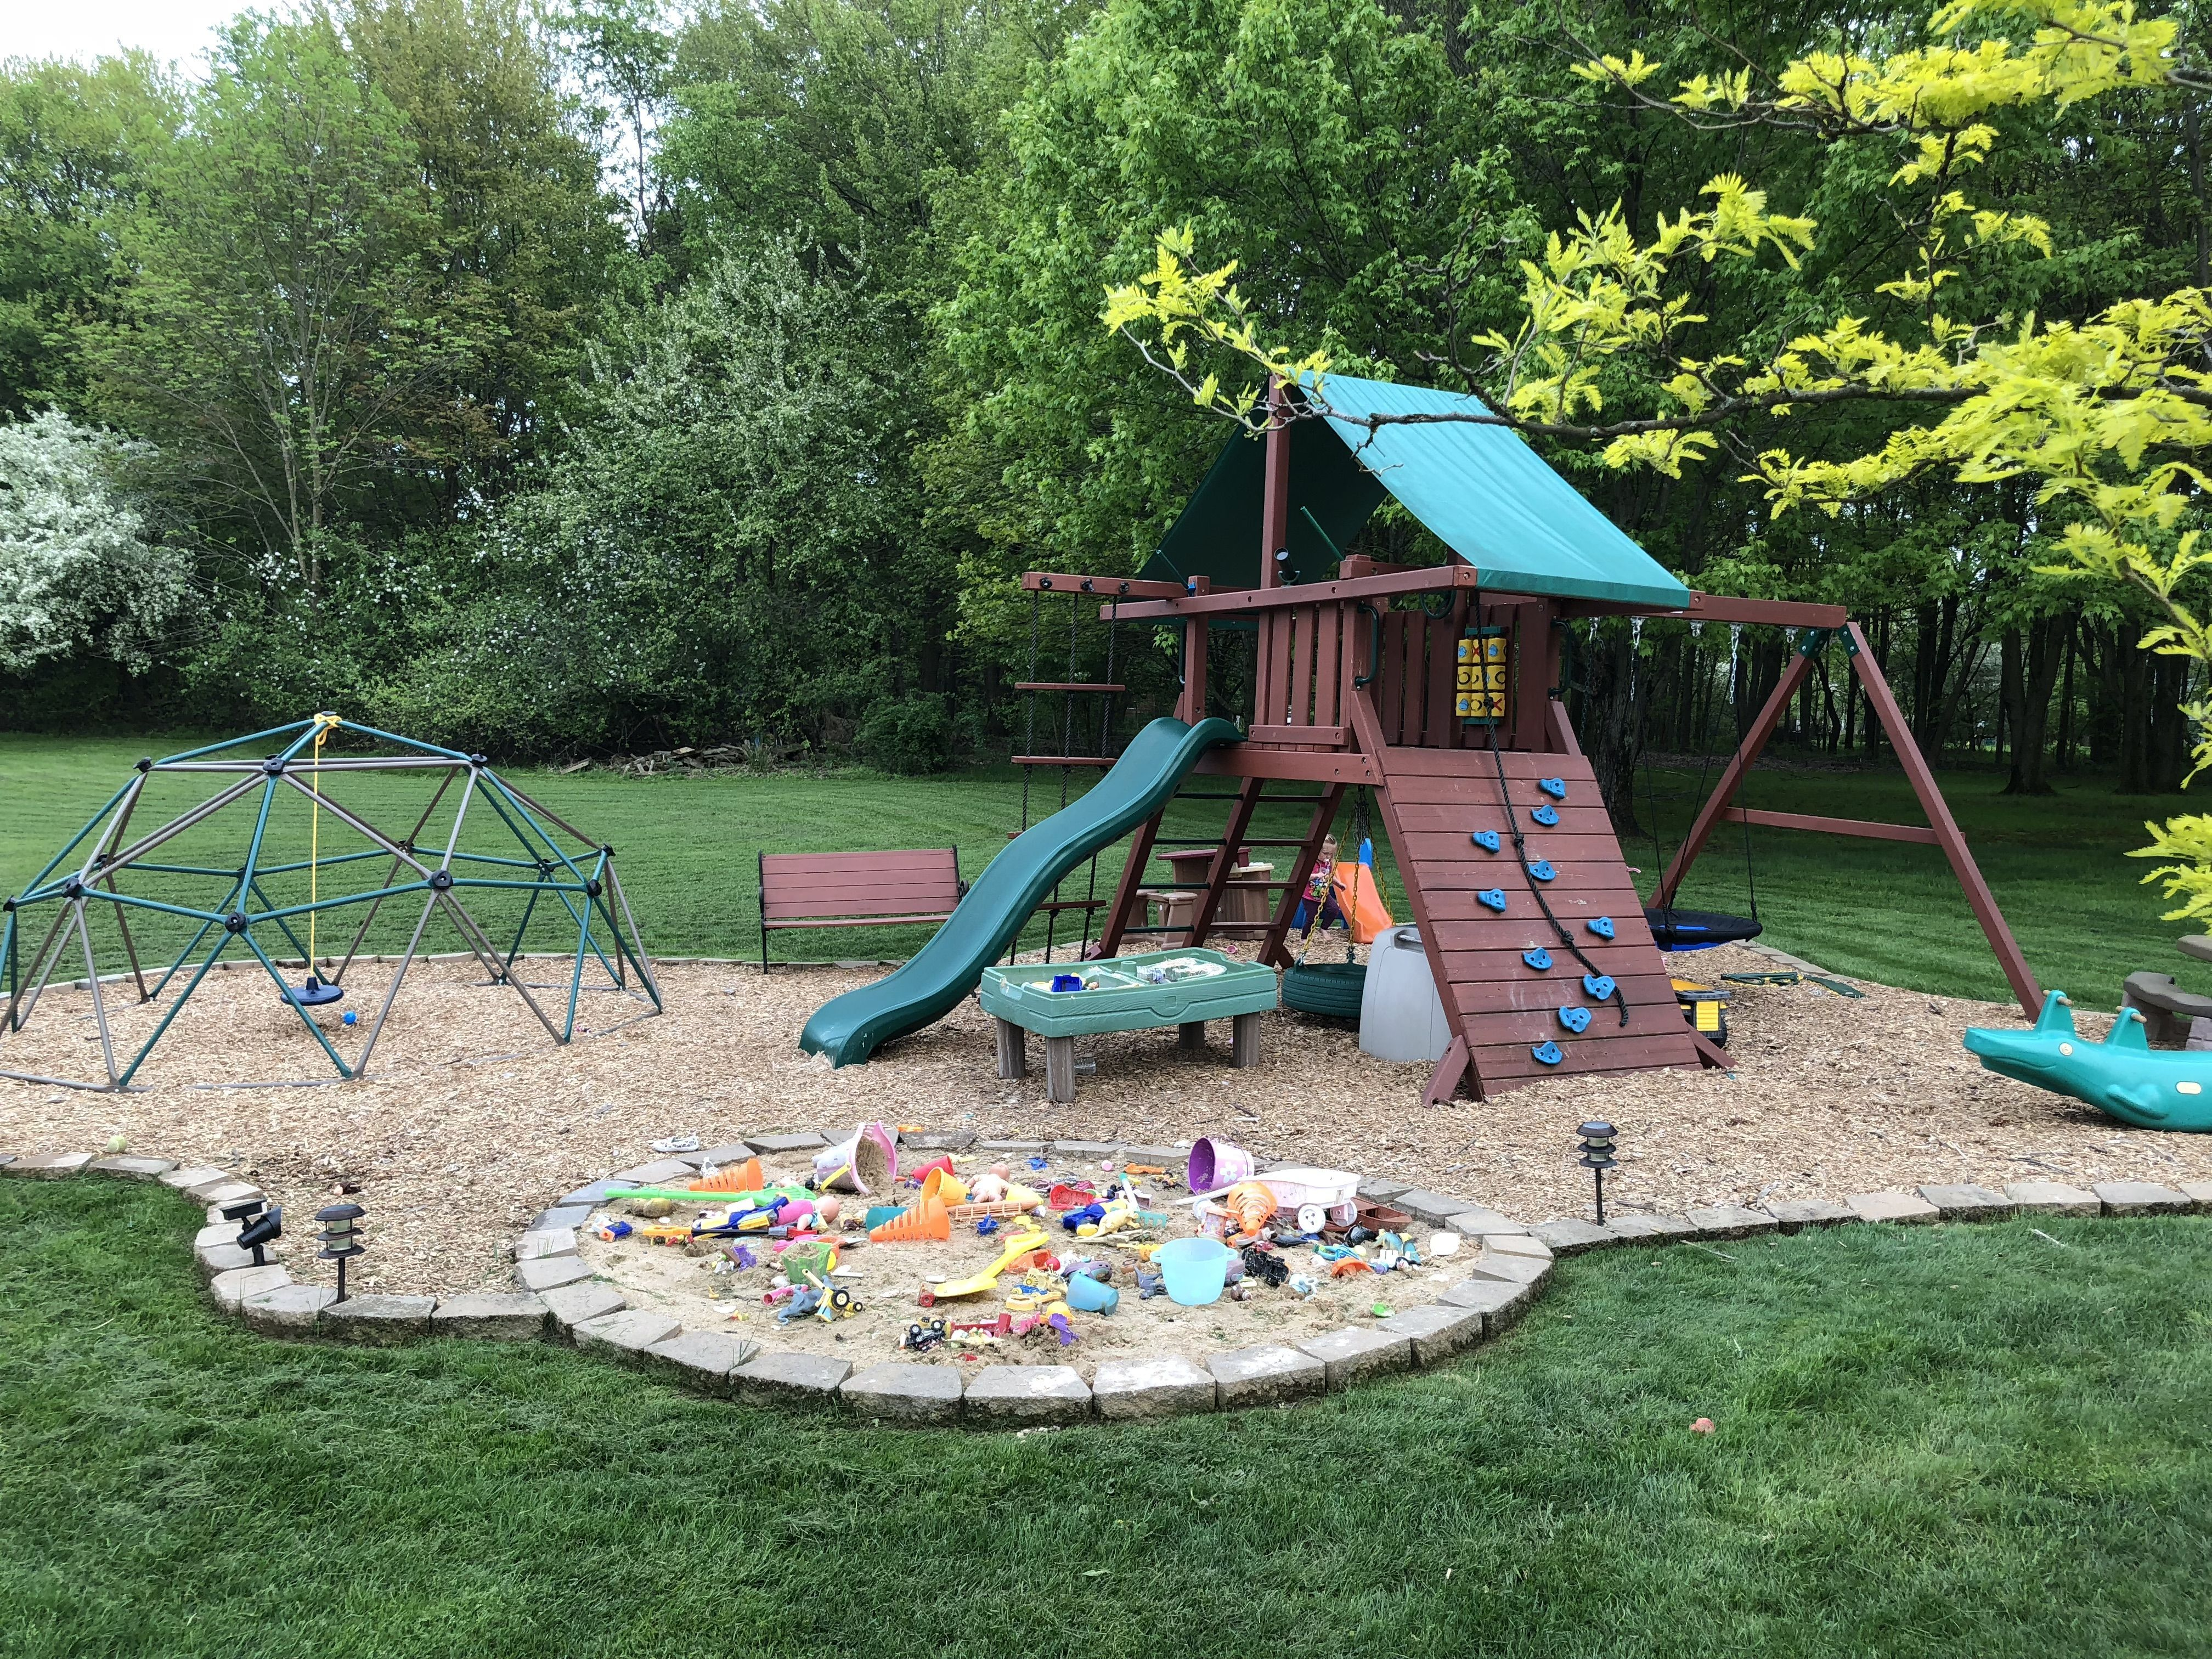 Formidable Backyard Playground Ideas For Toddlers ...